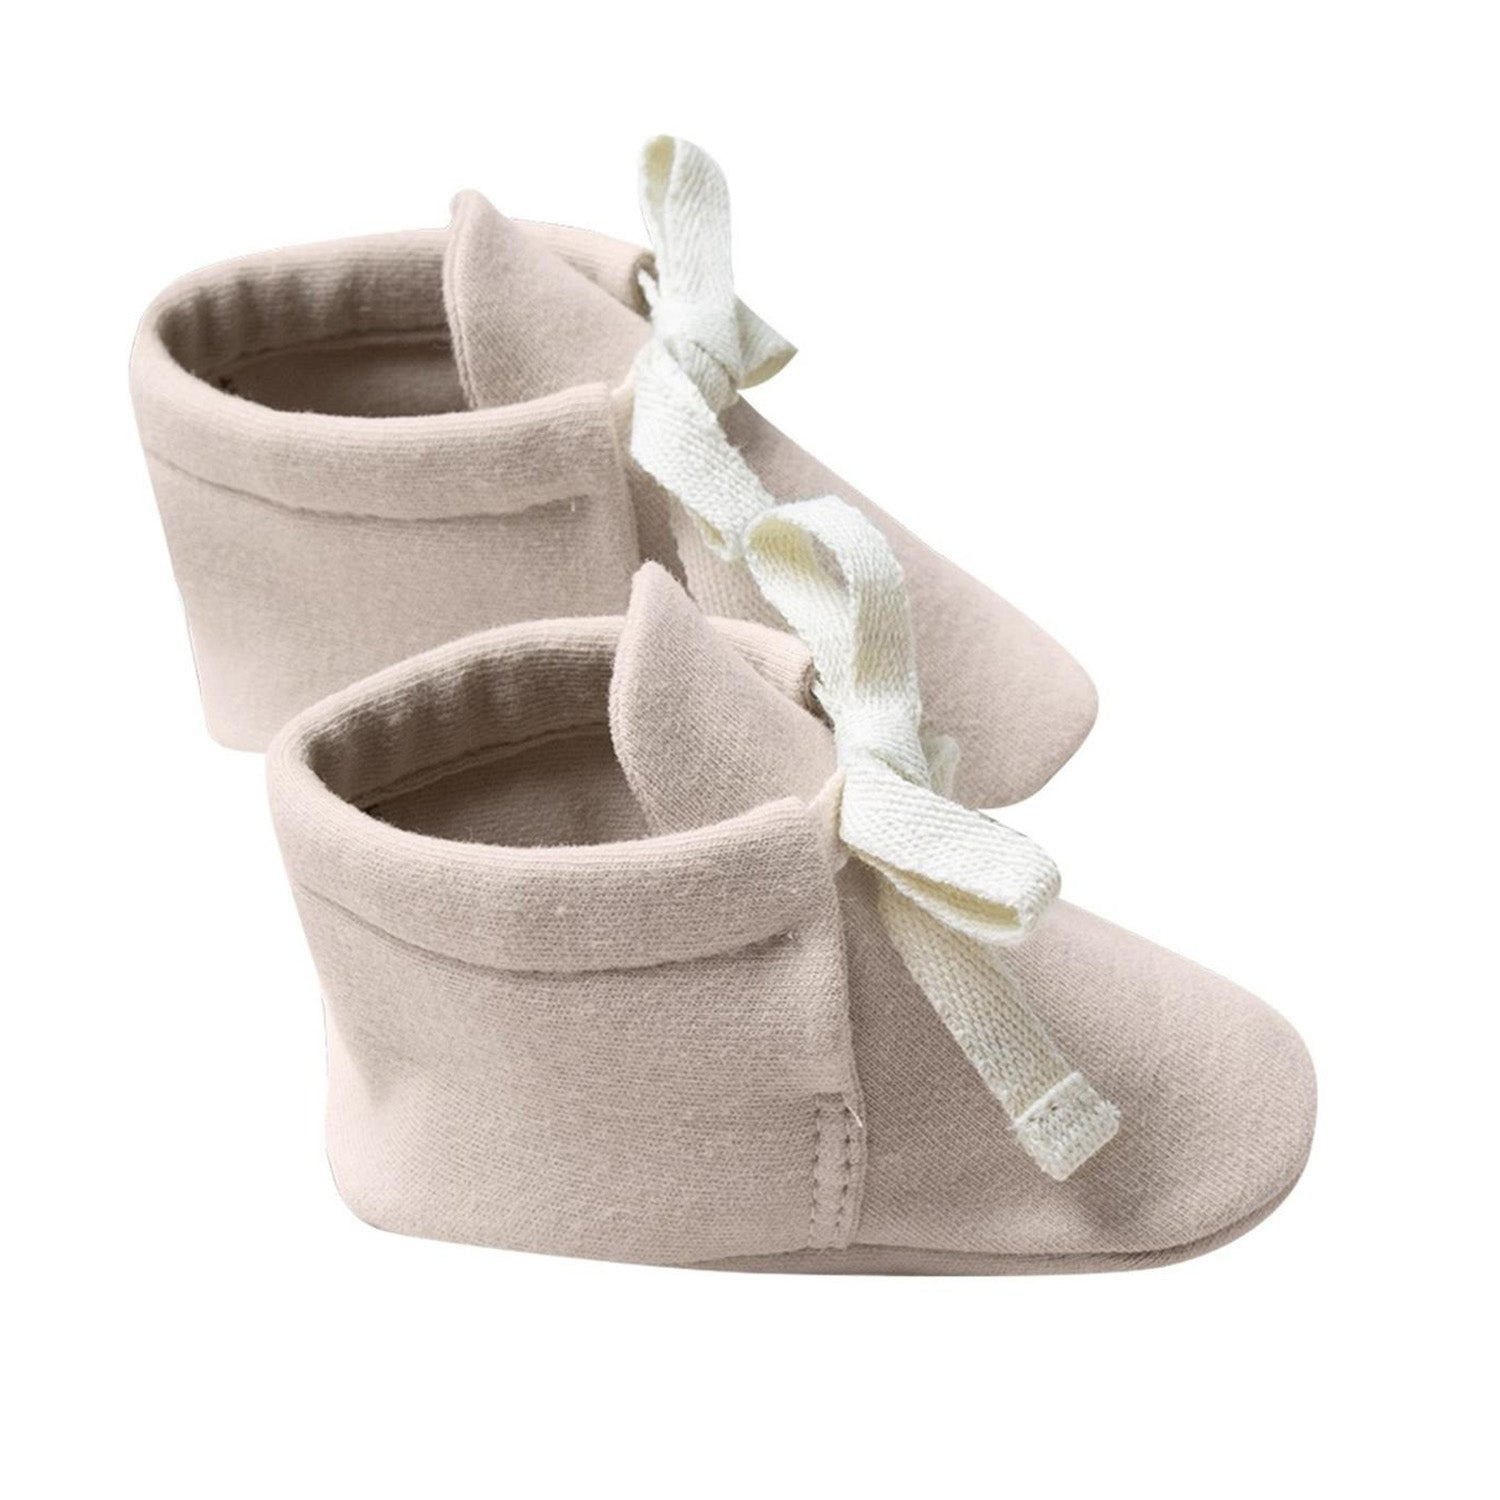 Quincy Mae Organic Baby Booties Rose